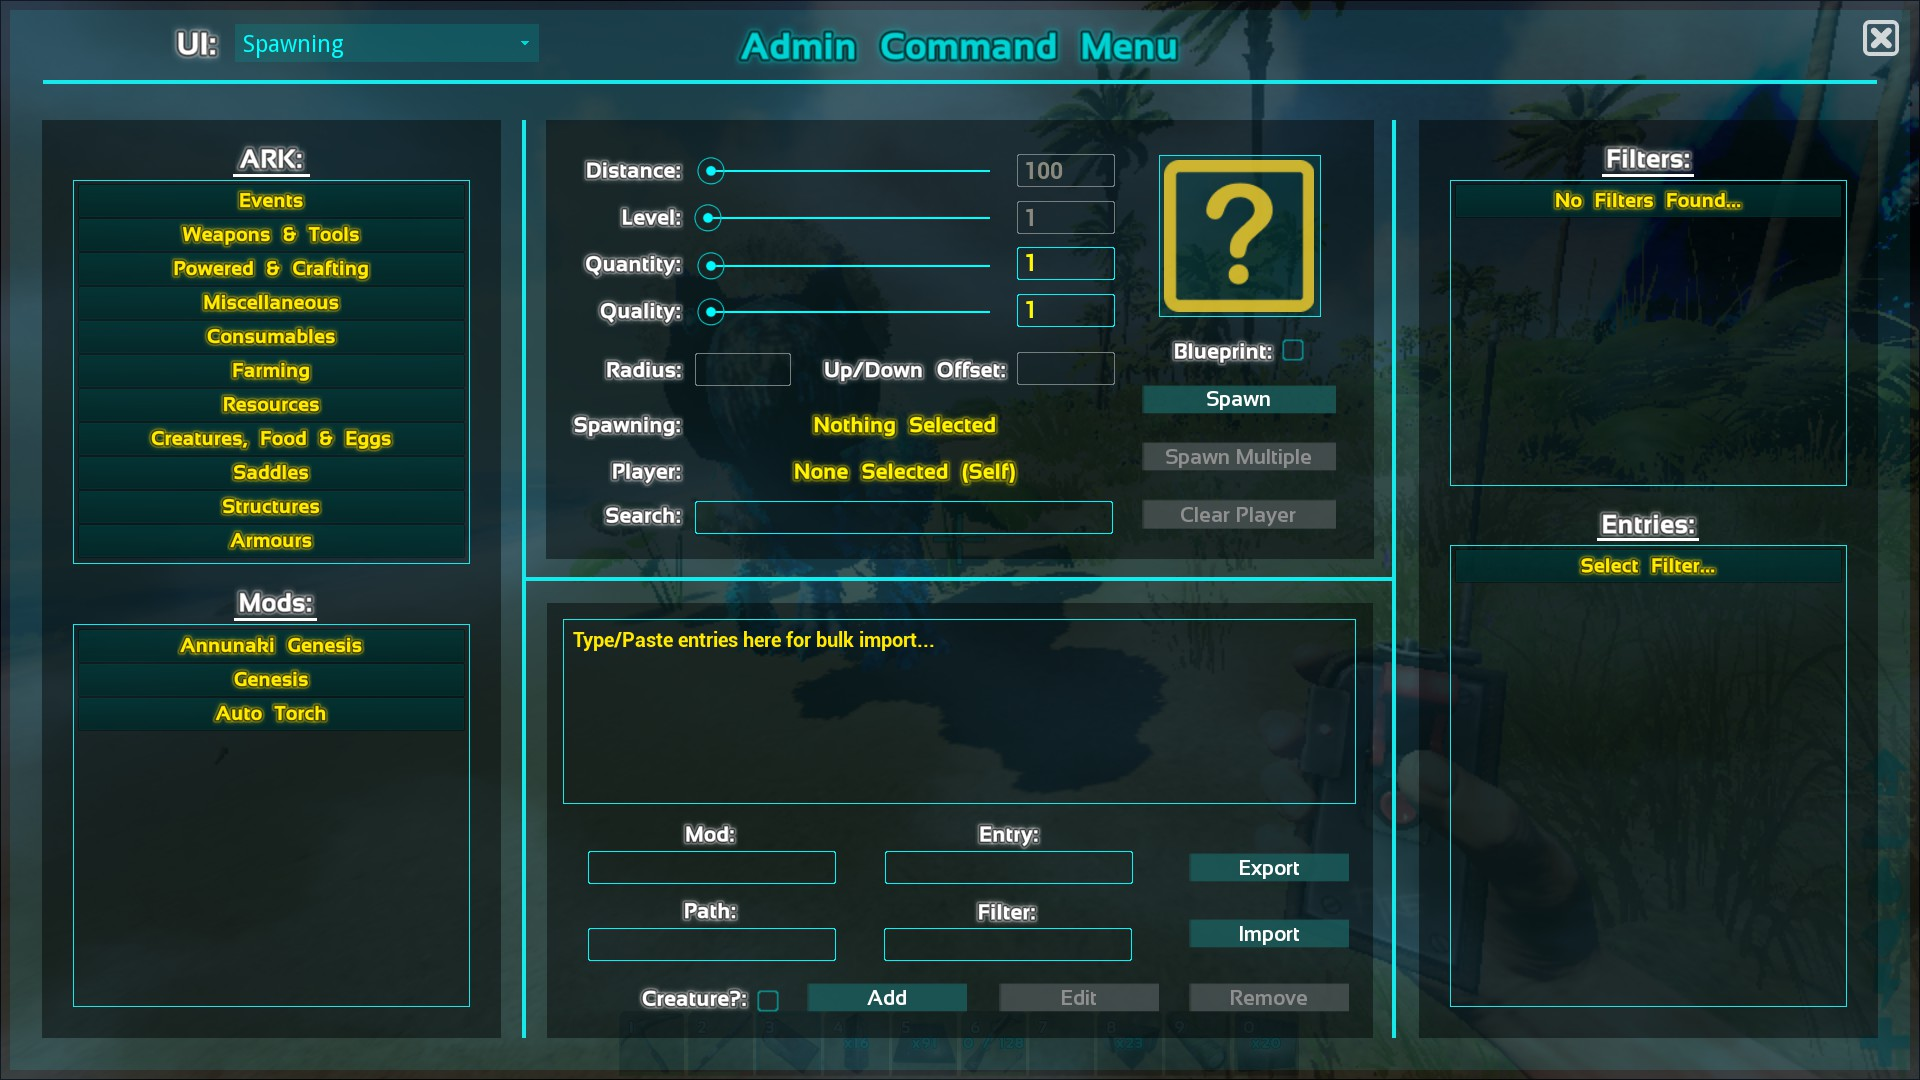 Steam Community :: Guide :: ACM Admin Command Menu Mod Bulk Import Guide